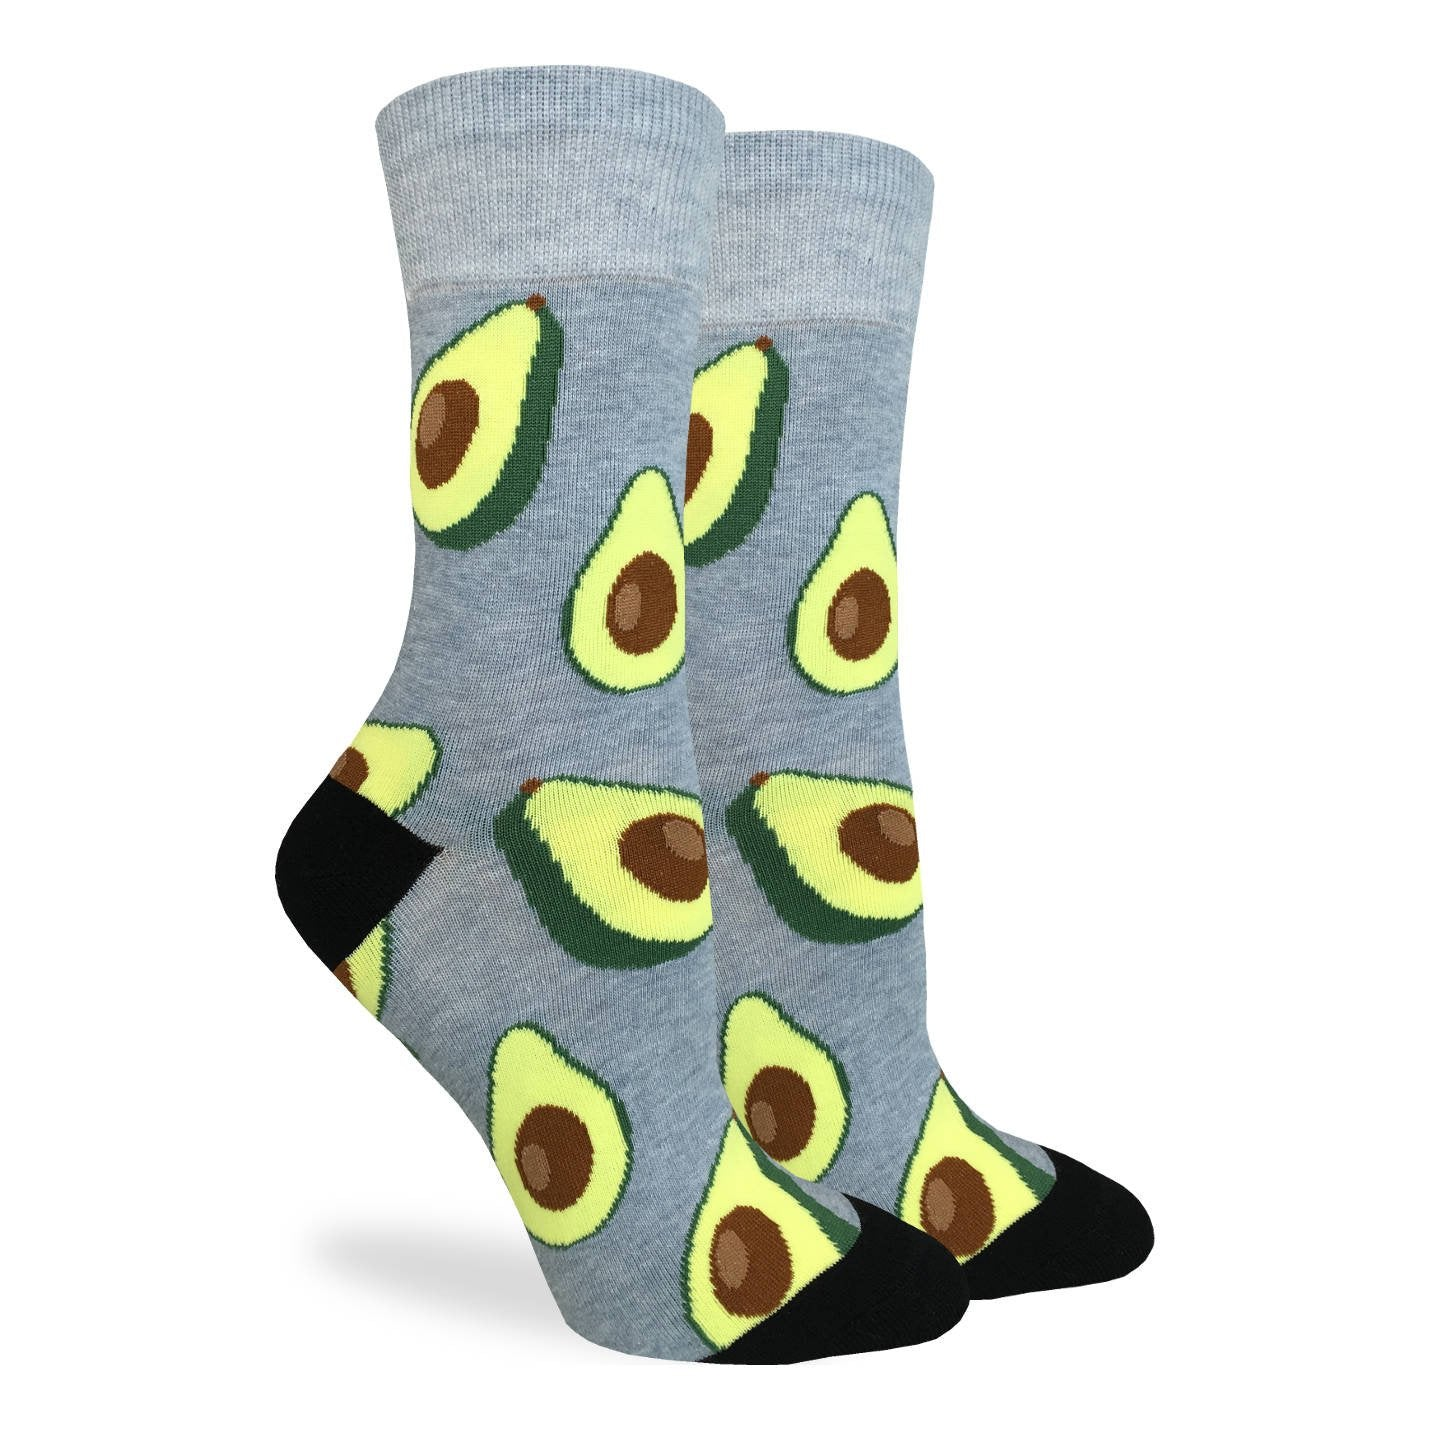 Women's Avocado Socks - Good Luck Sock